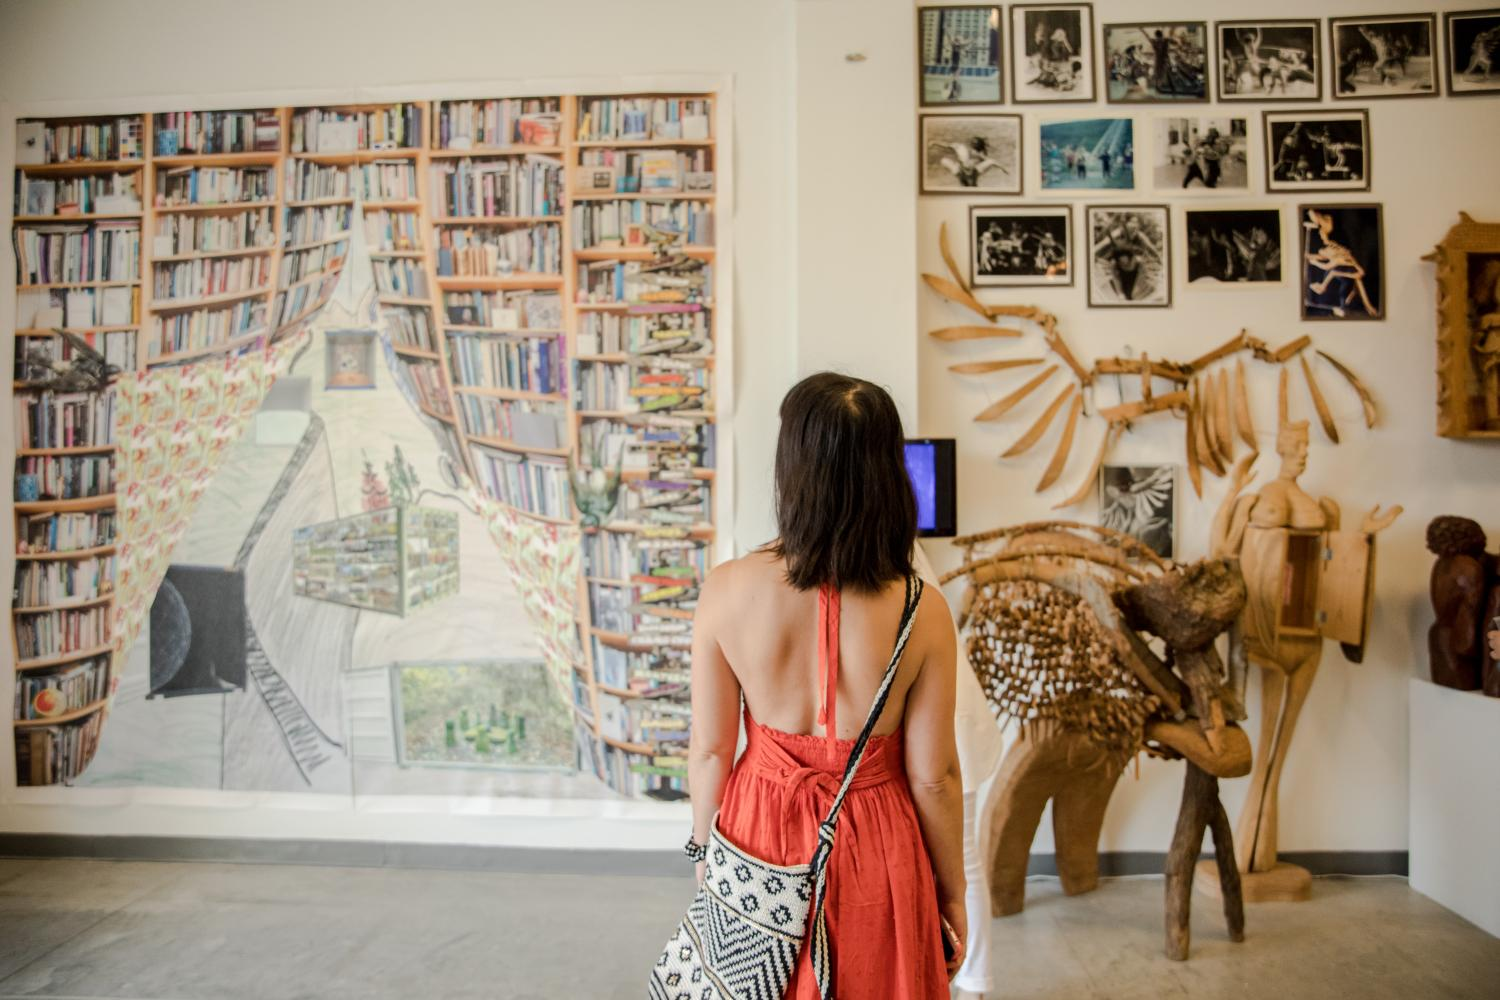 Person looking at artwork. On the right side is a large colorful print, on the left side is an installation of photographs and wooden sculptures.